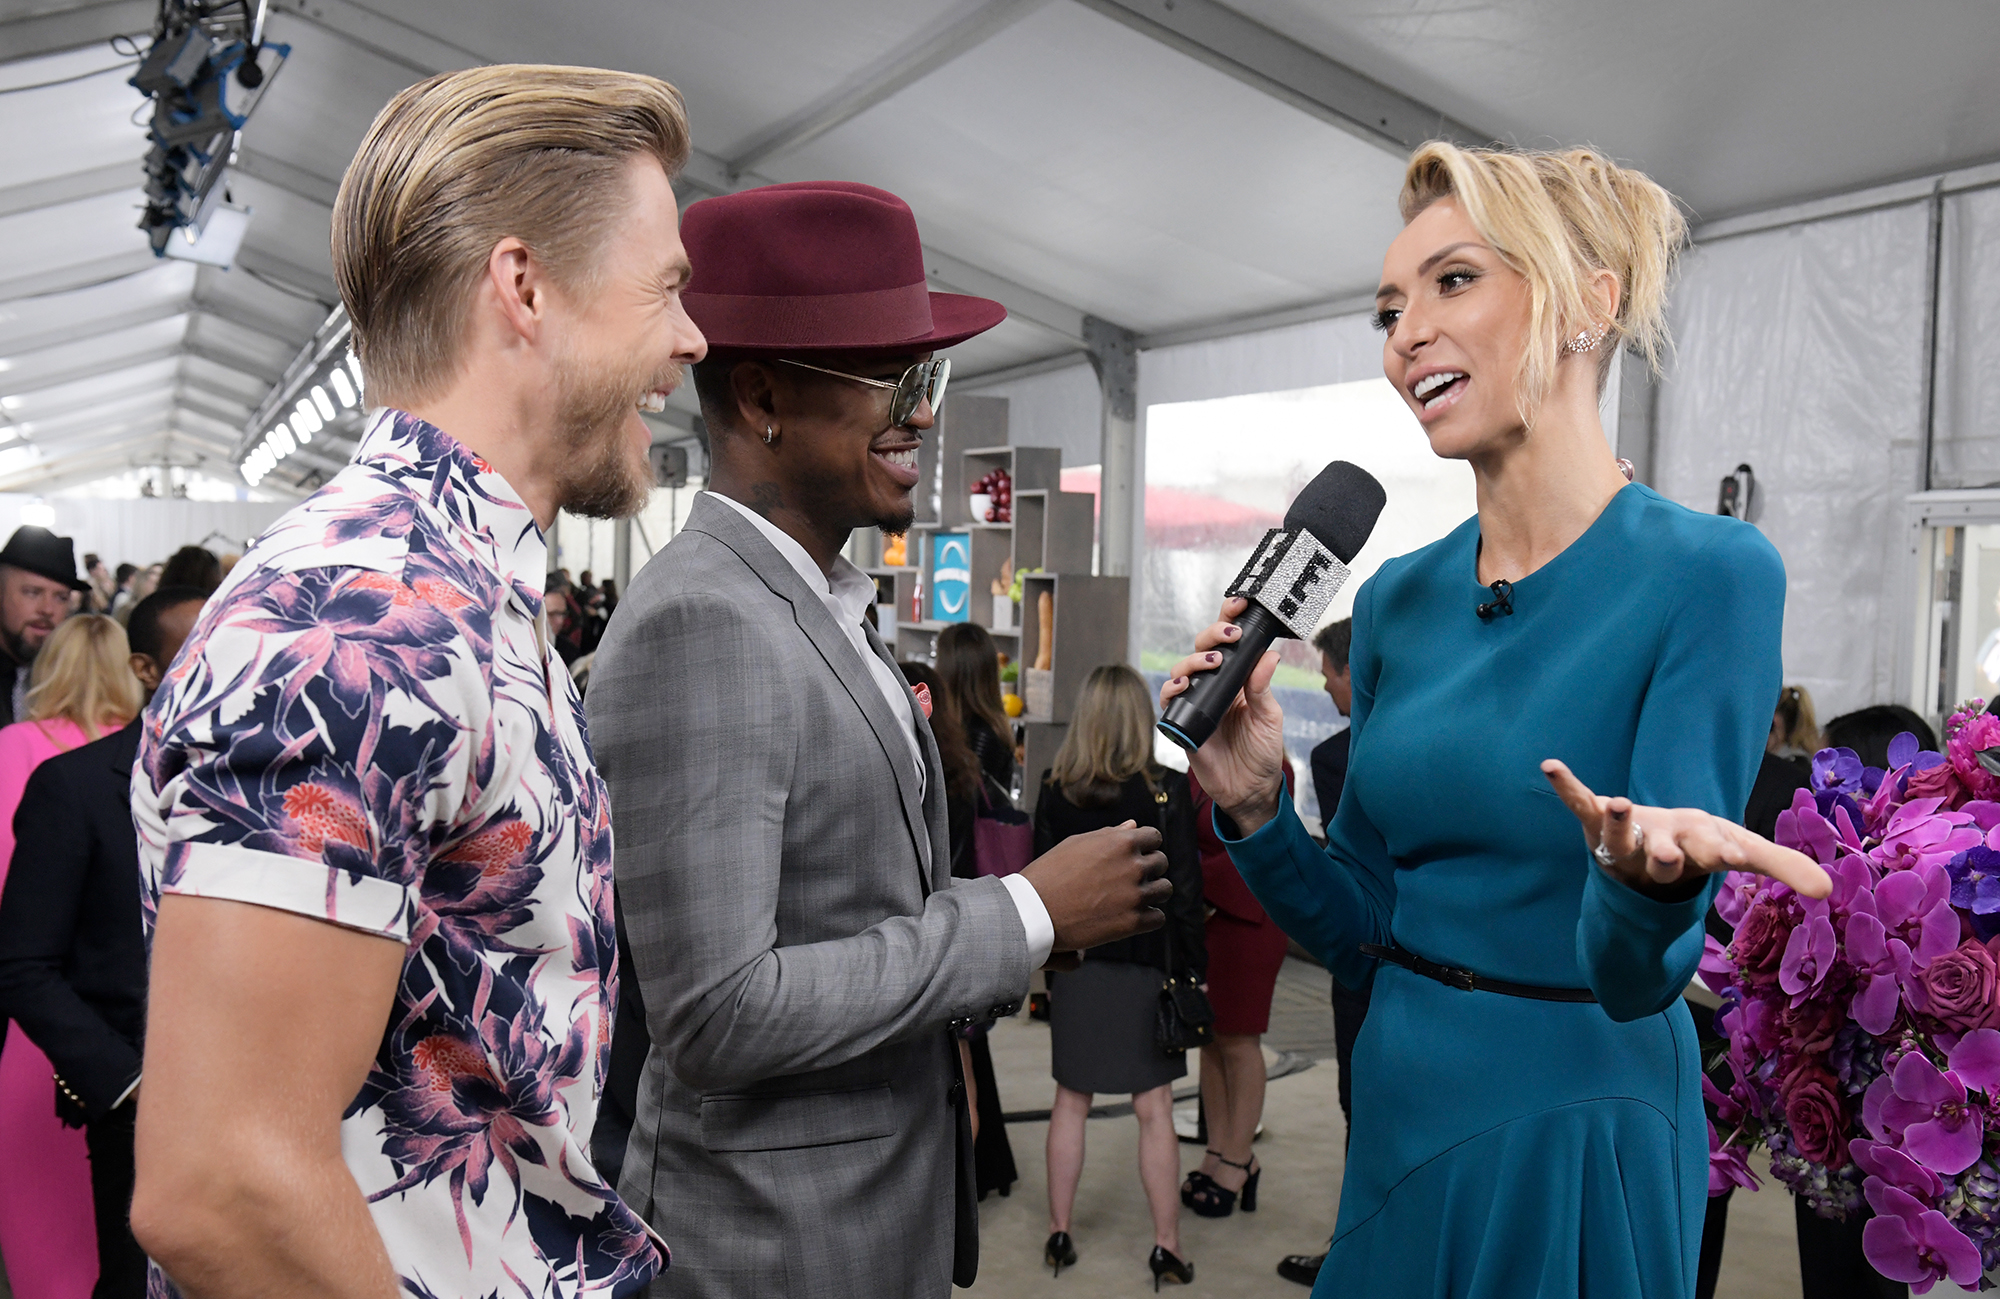 E! News is canceled after 29 years on air